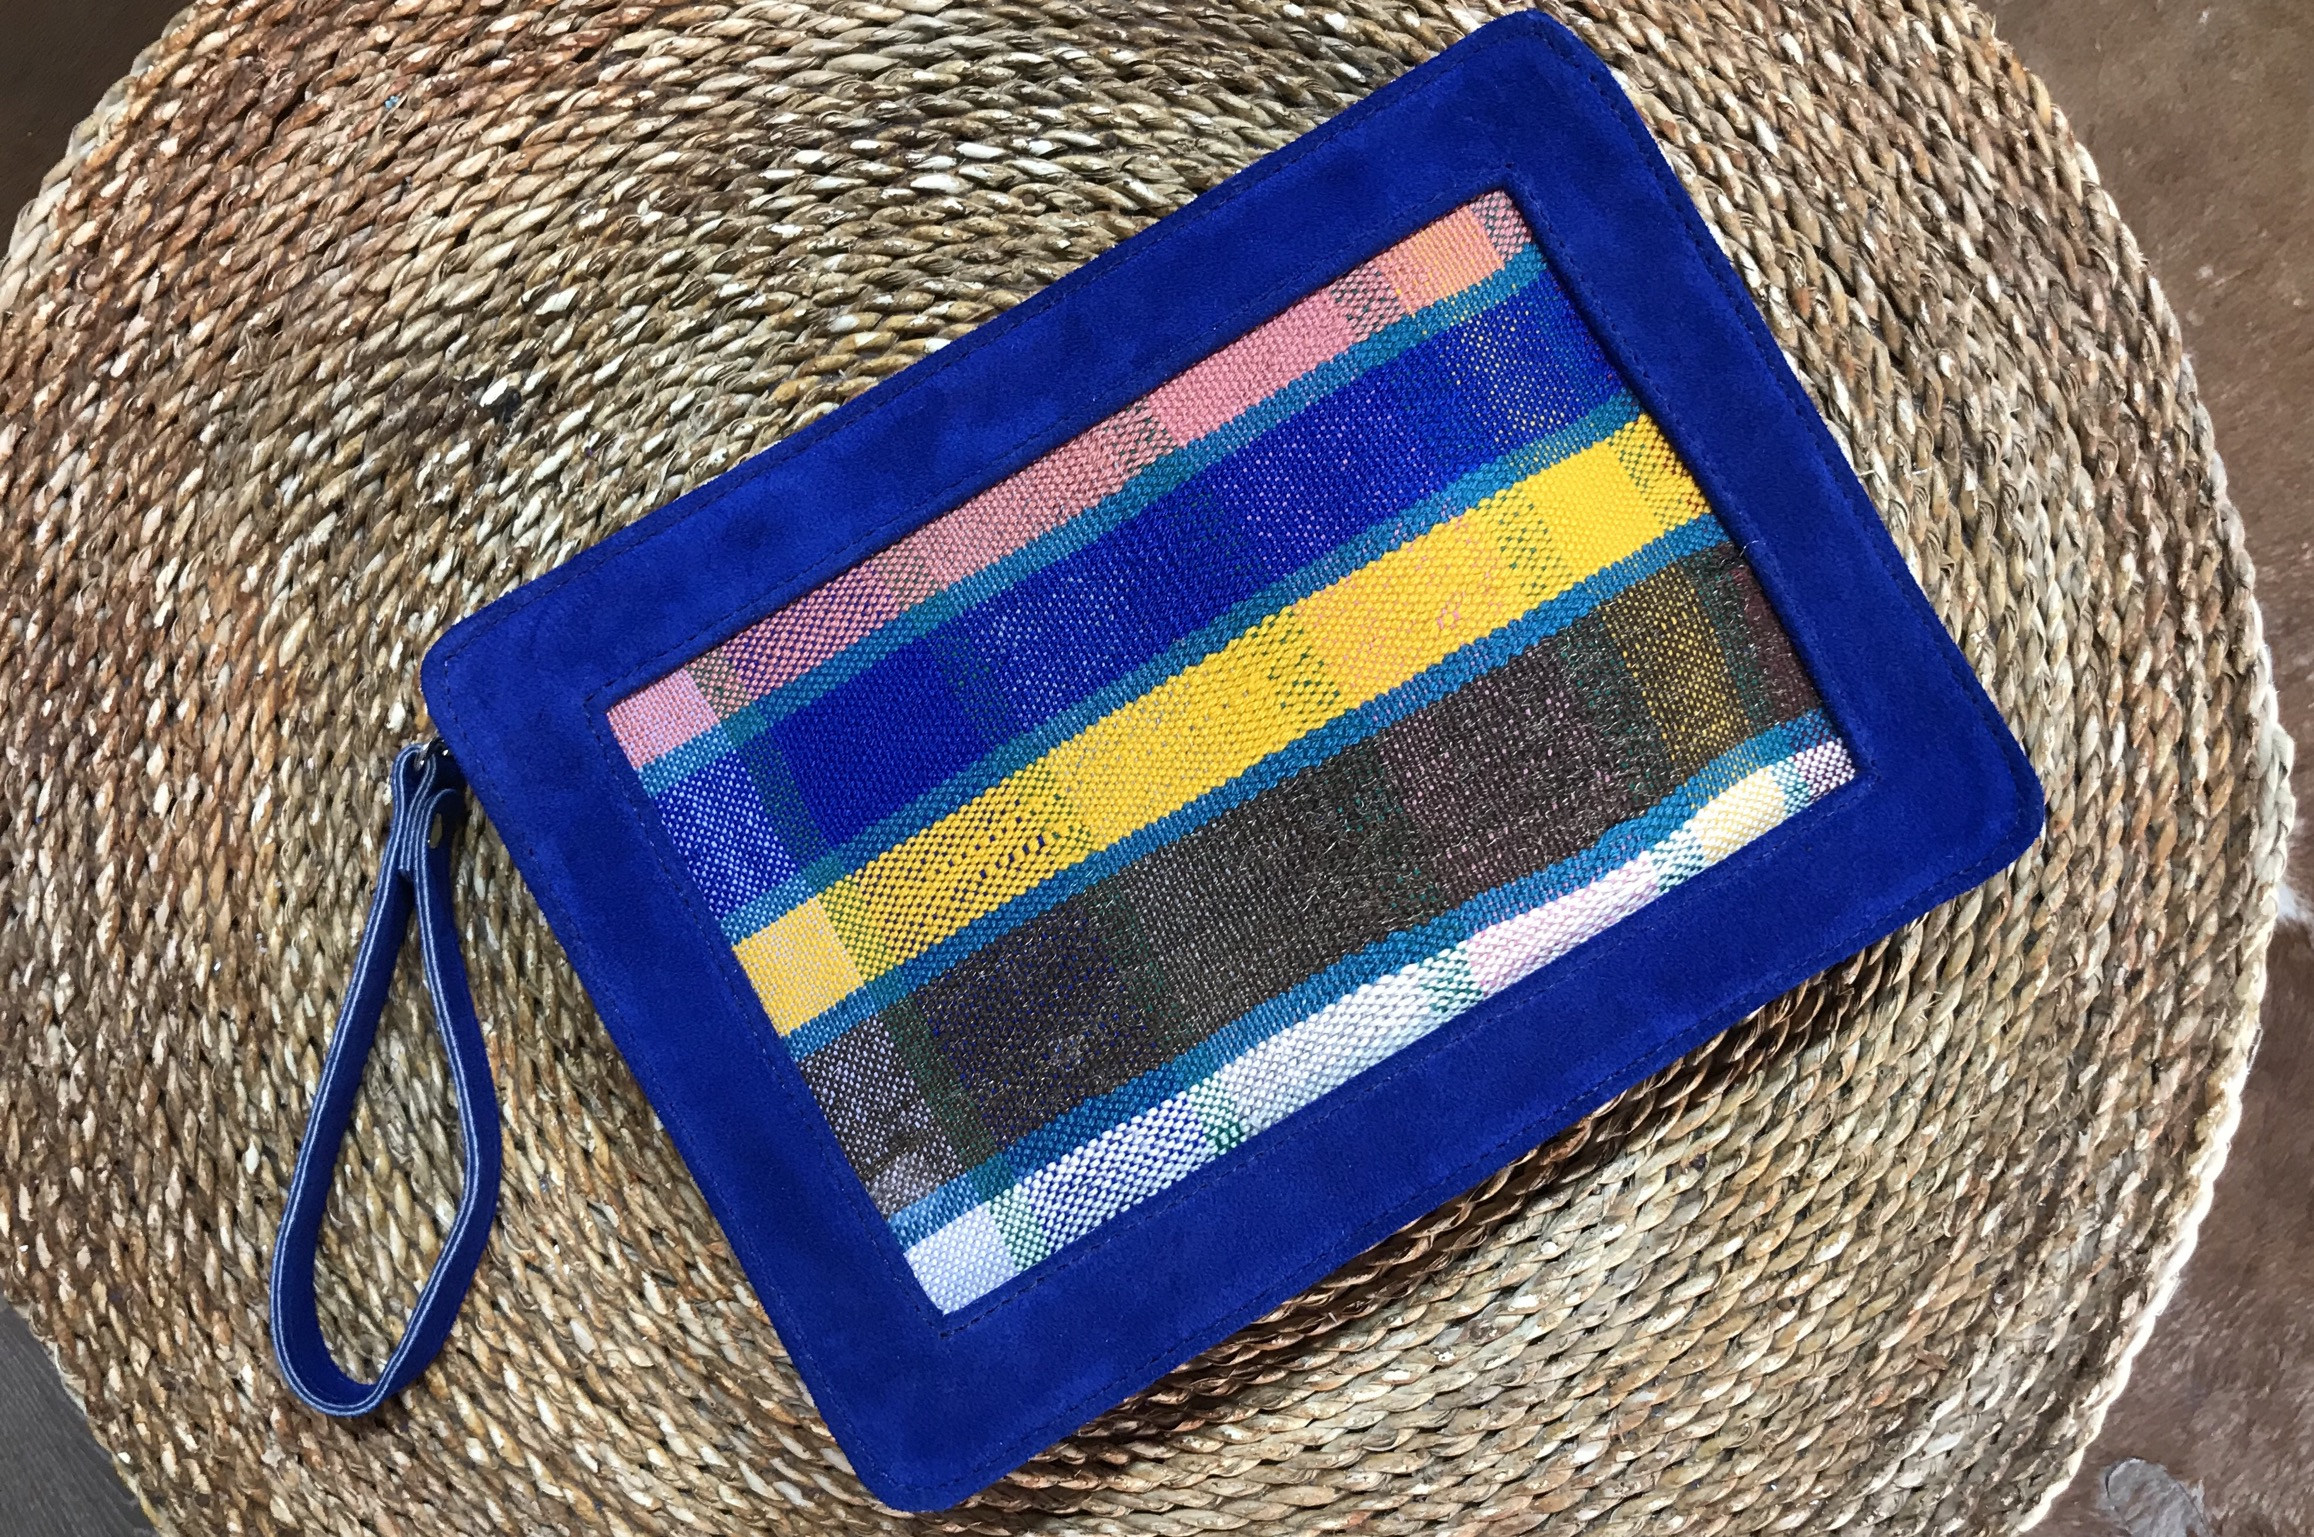 Purse with suede leather Blue majorelle & Rug Colorful